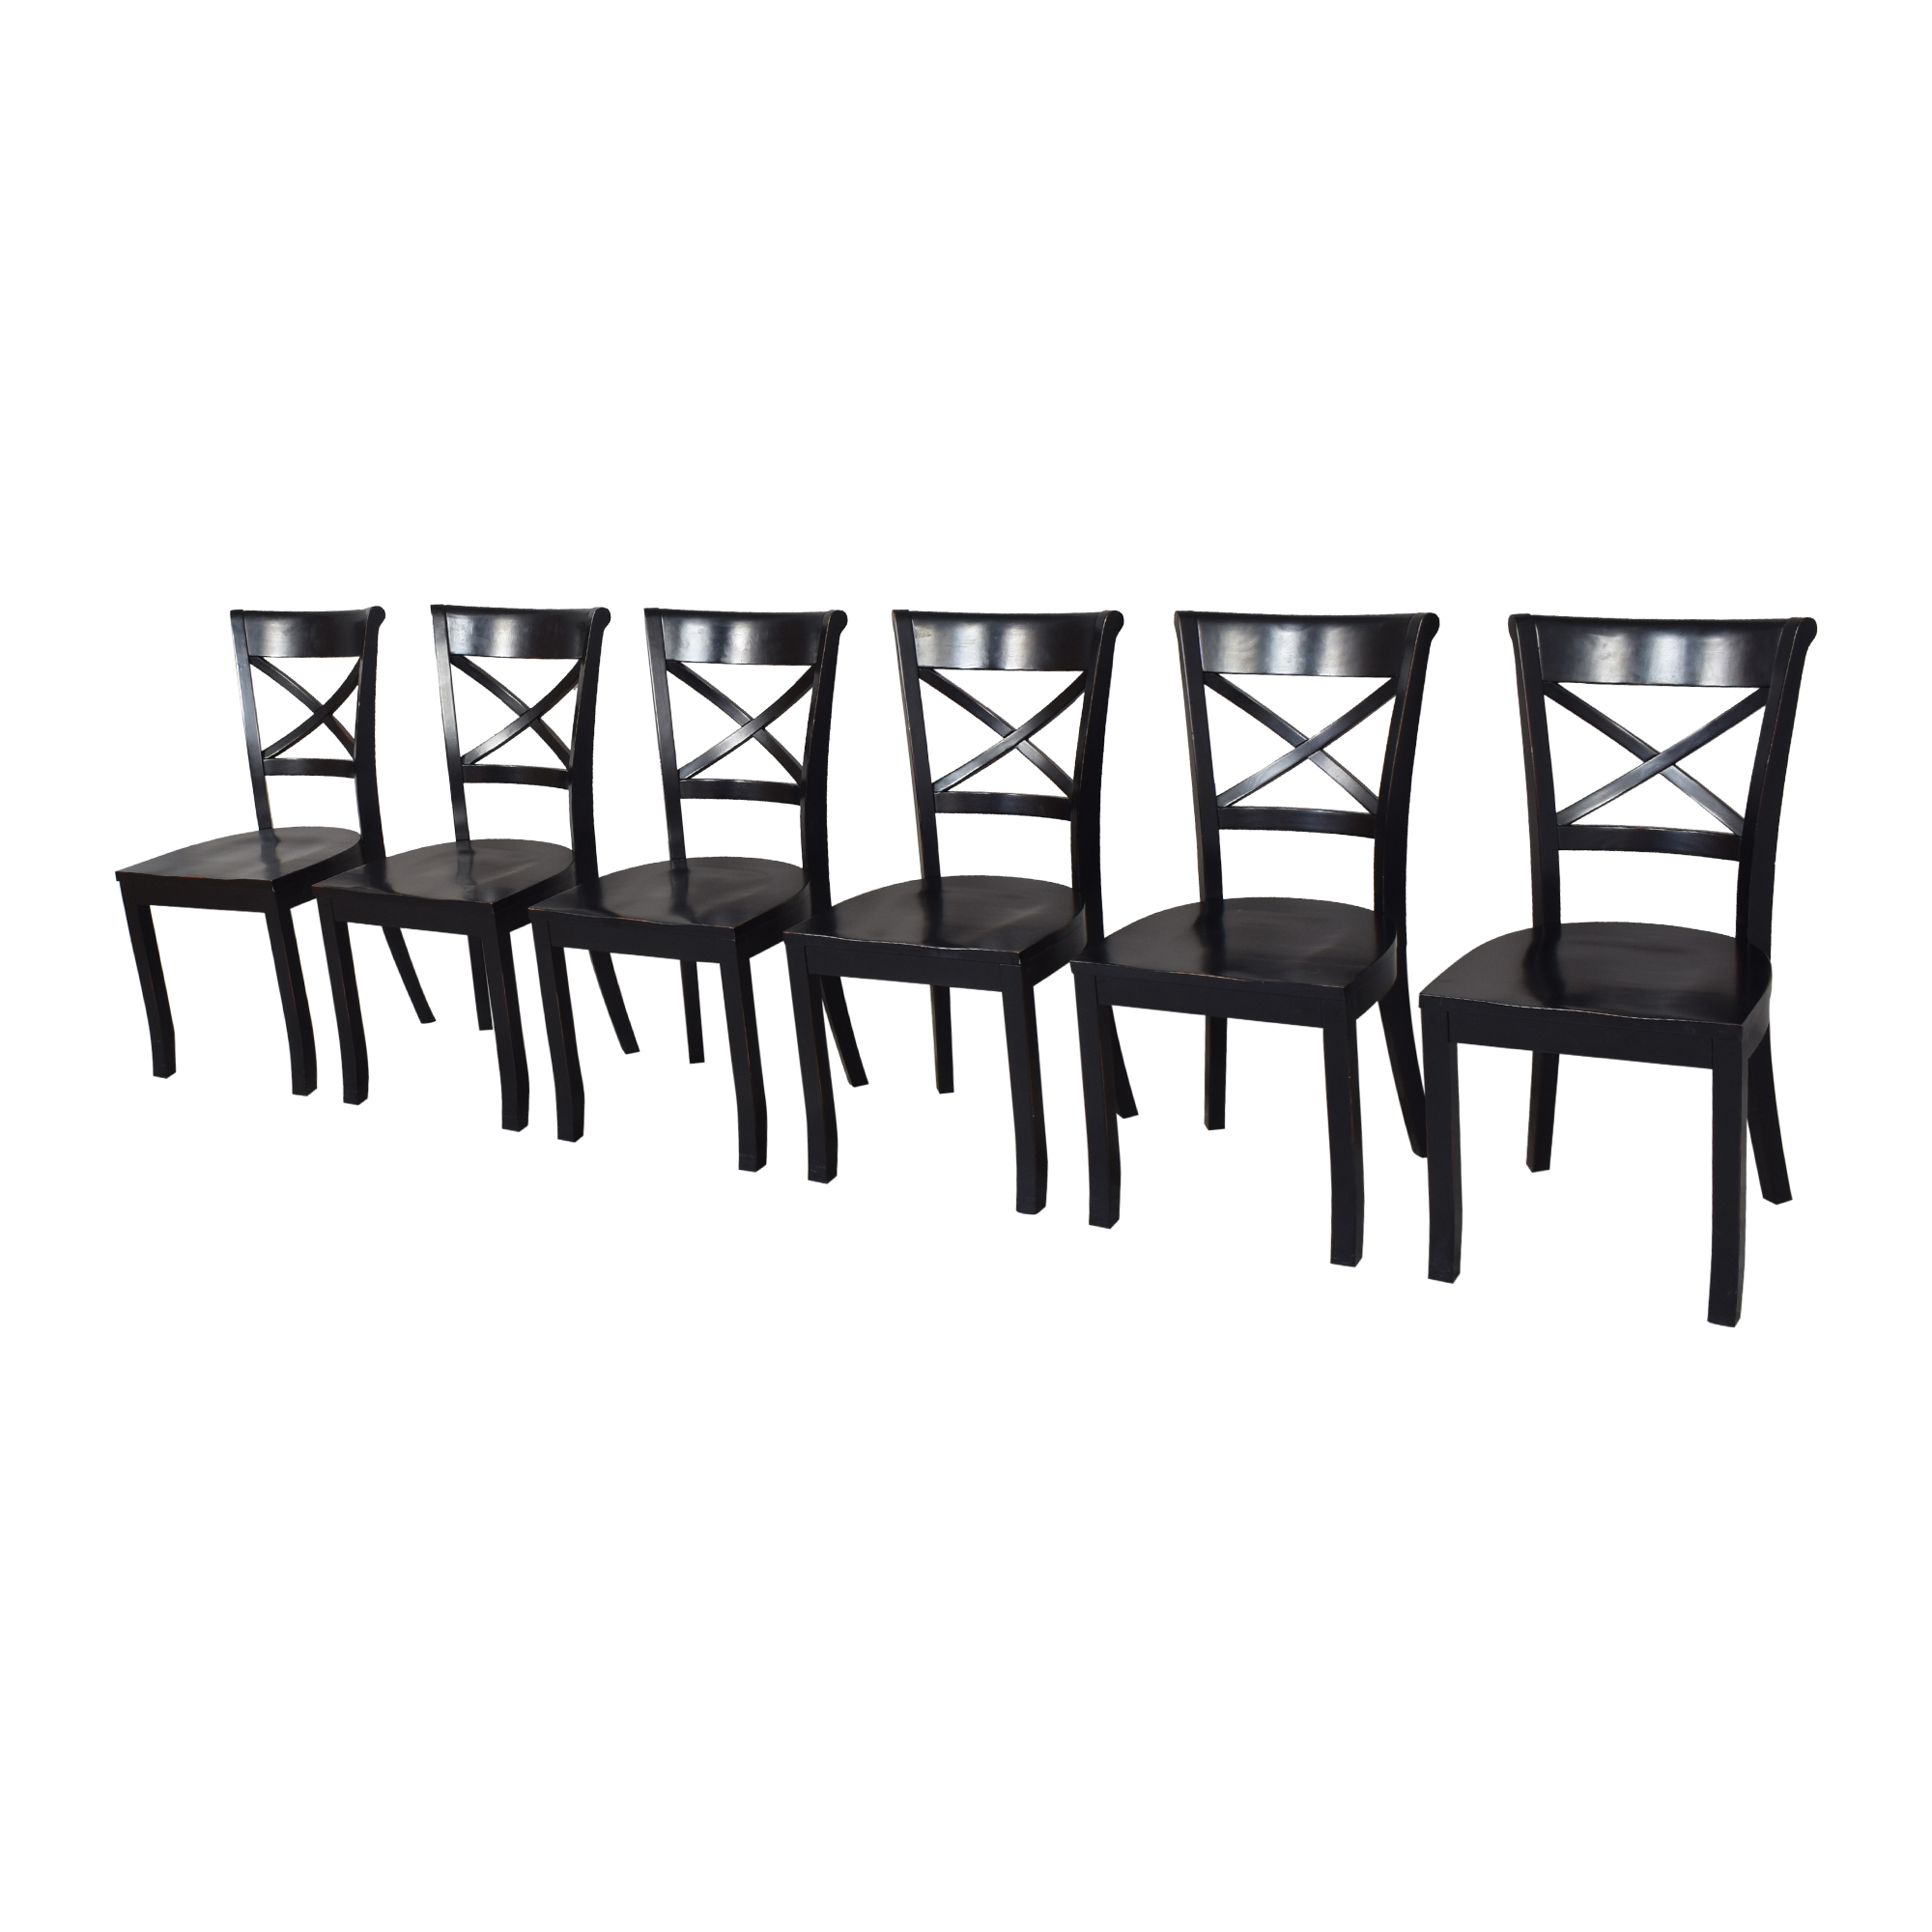 Crate & Barrel Crate & Barrel Vintner X Back Dining Chairs for sale